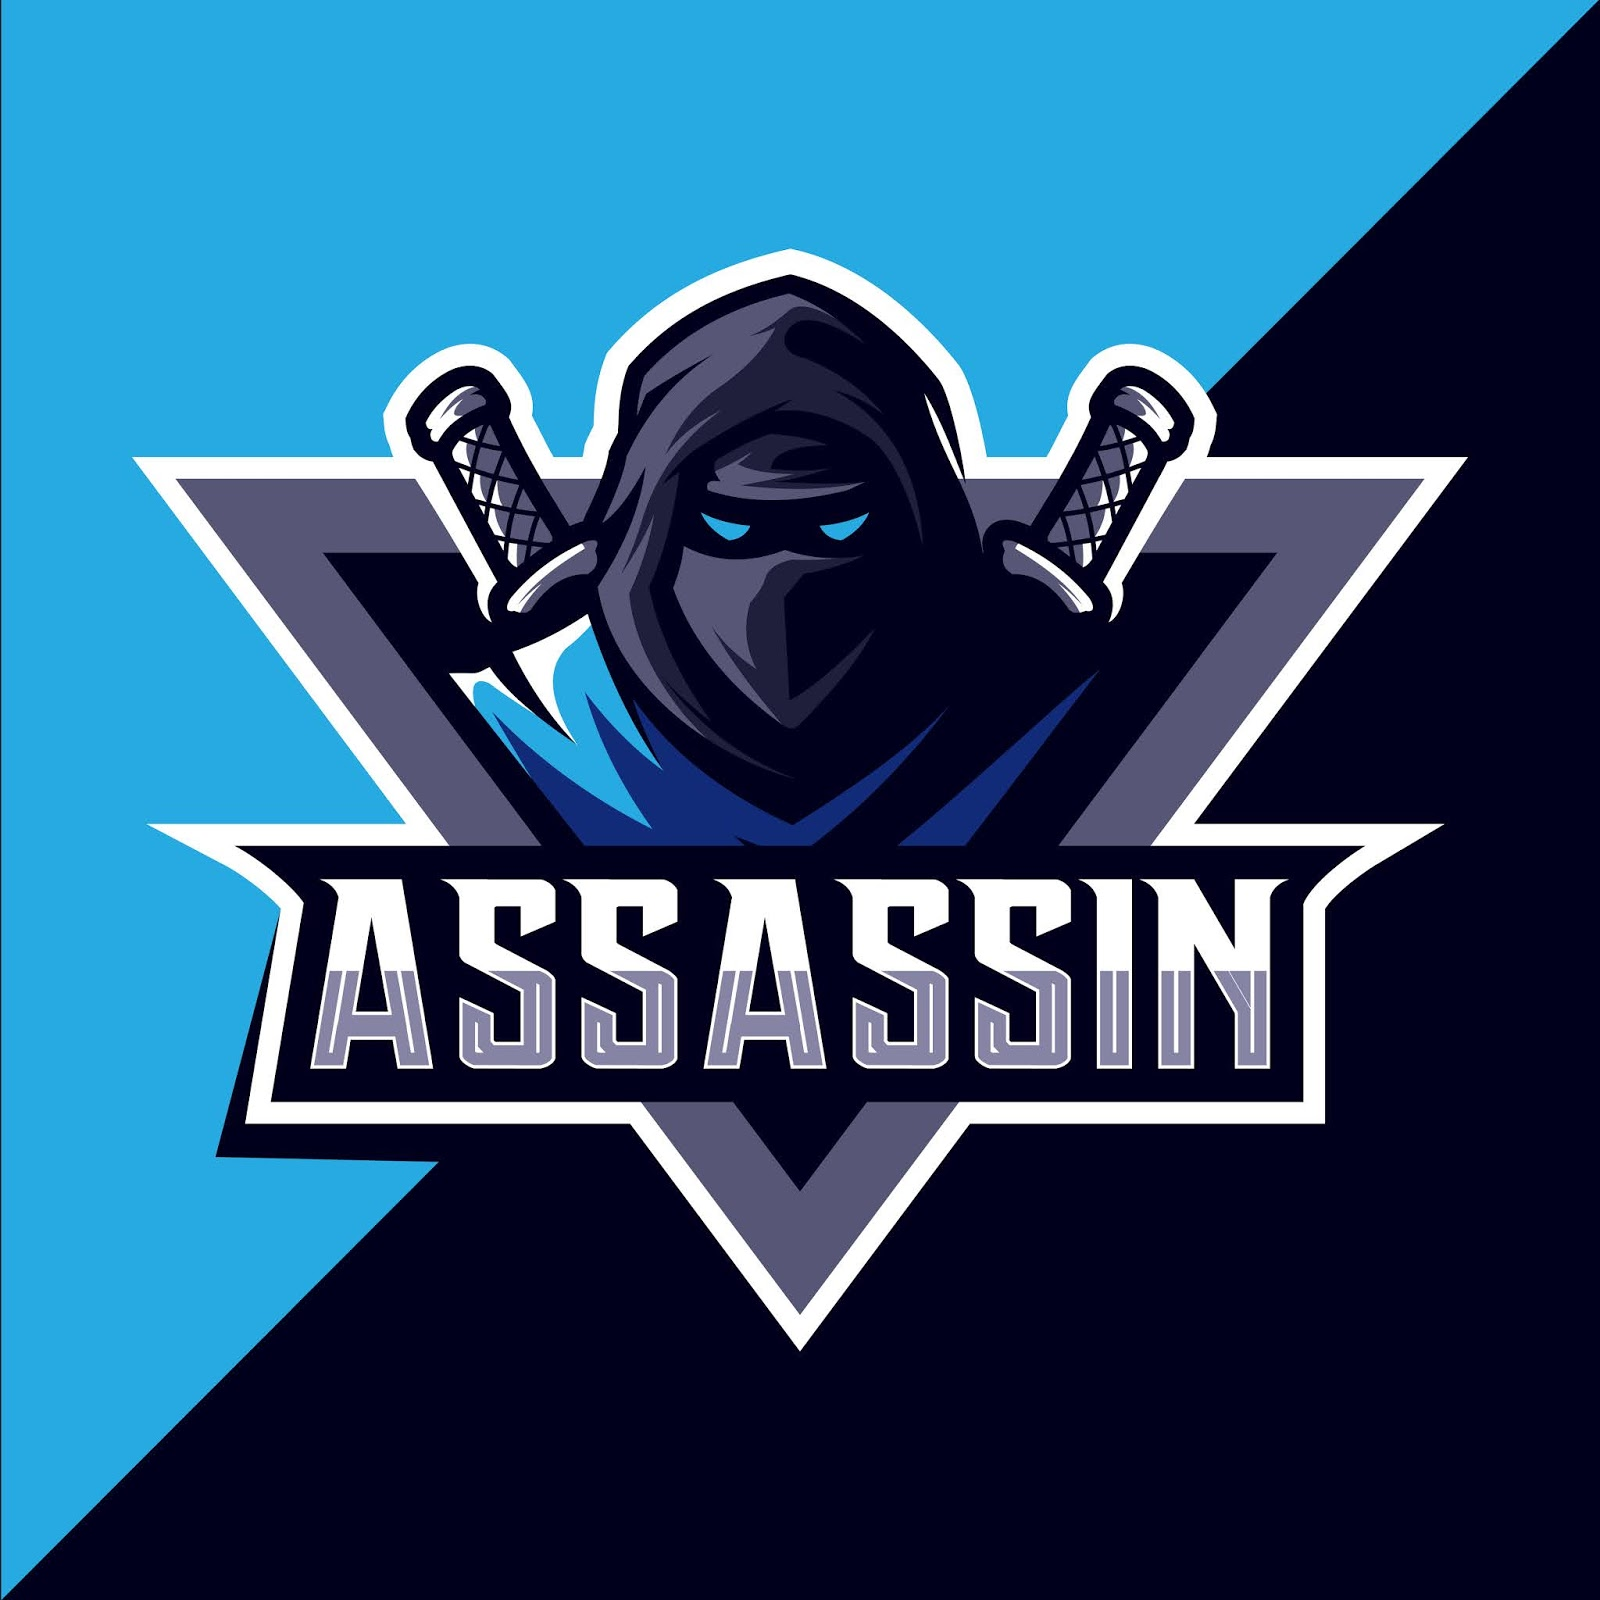 Assassin With Sword Mascot Esport Logo Design Free Download Vector CDR, AI, EPS and PNG Formats